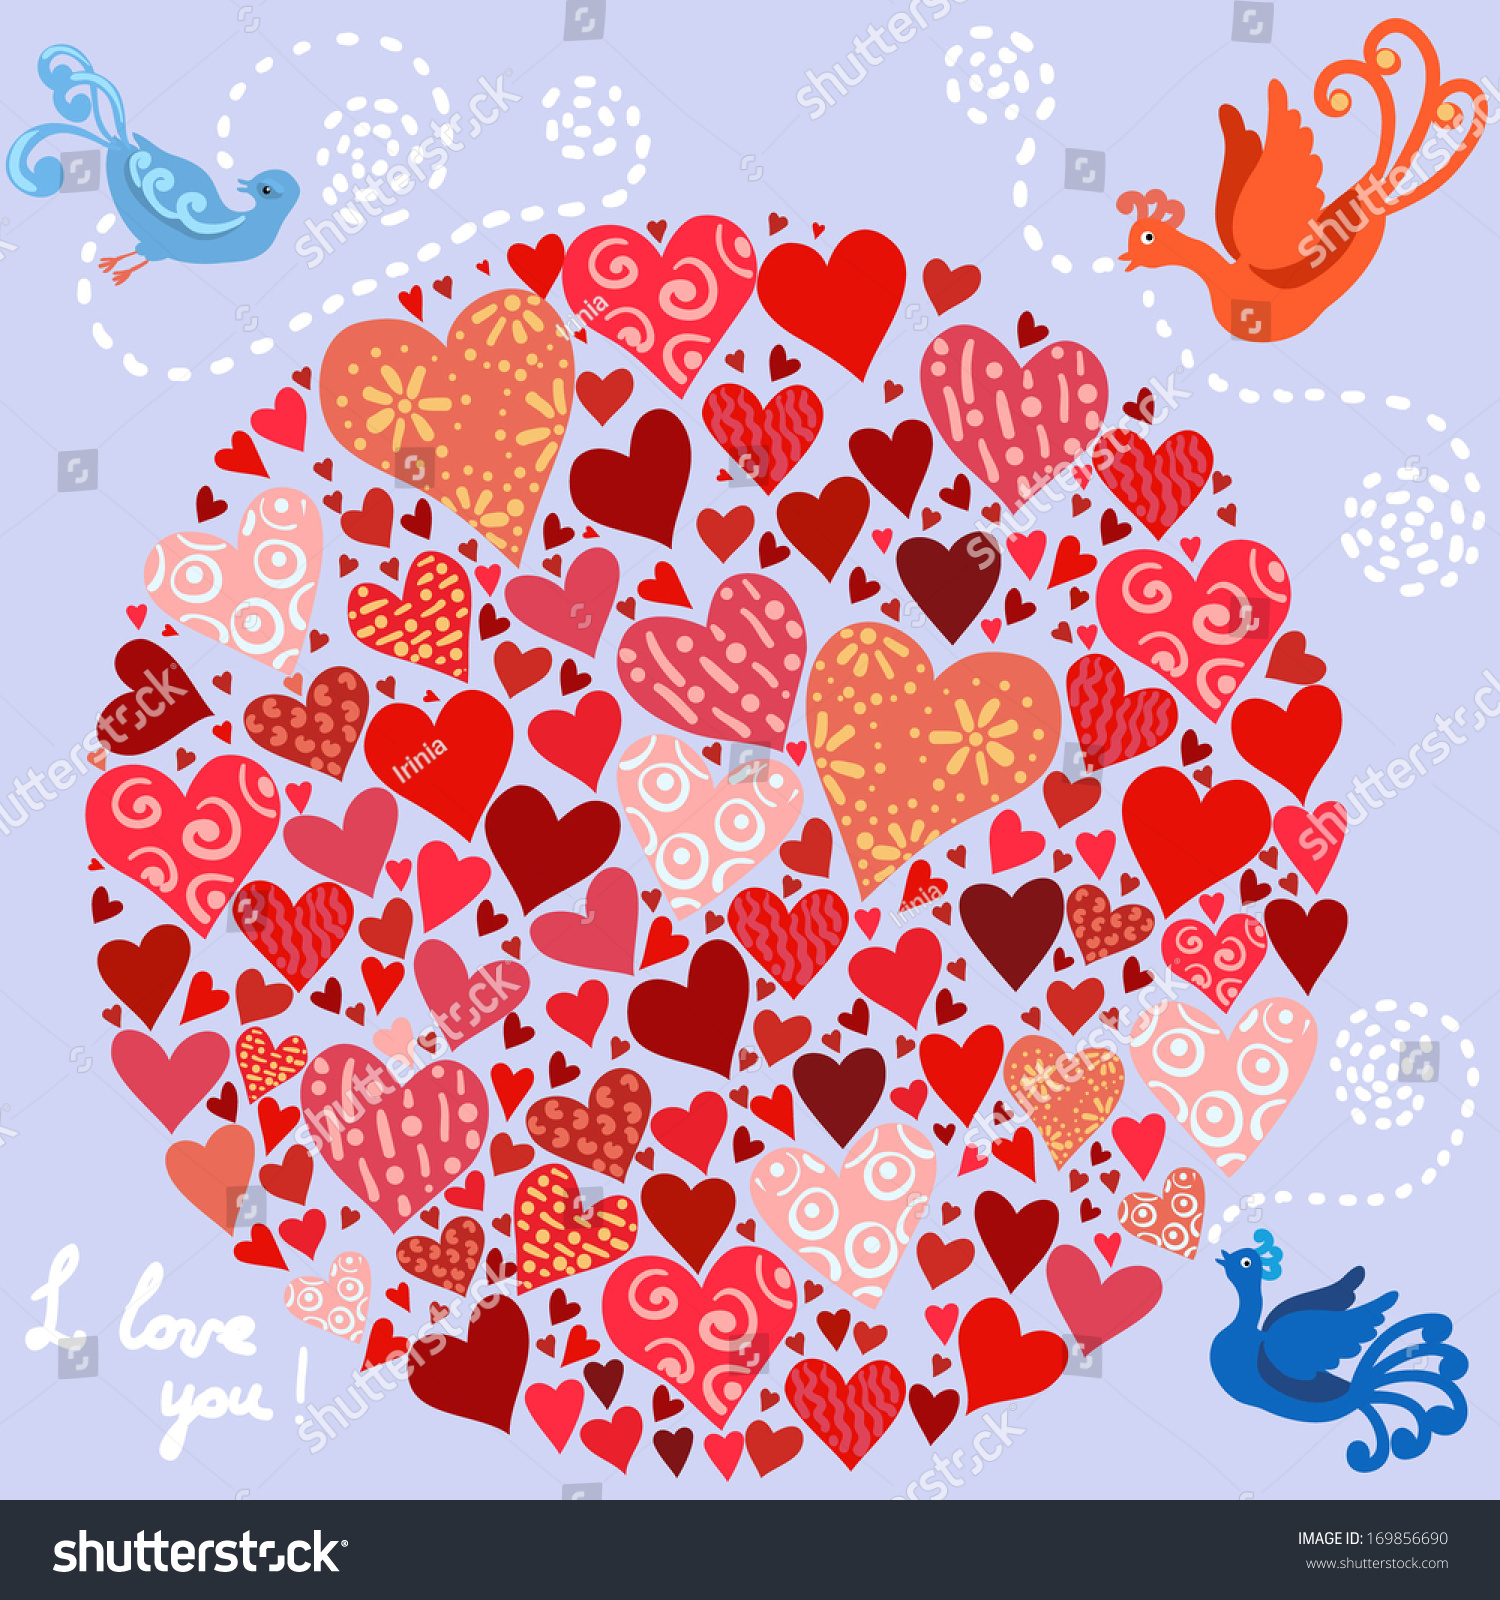 Cute Composition Hearts Arranged In A Circle, Different Colors And